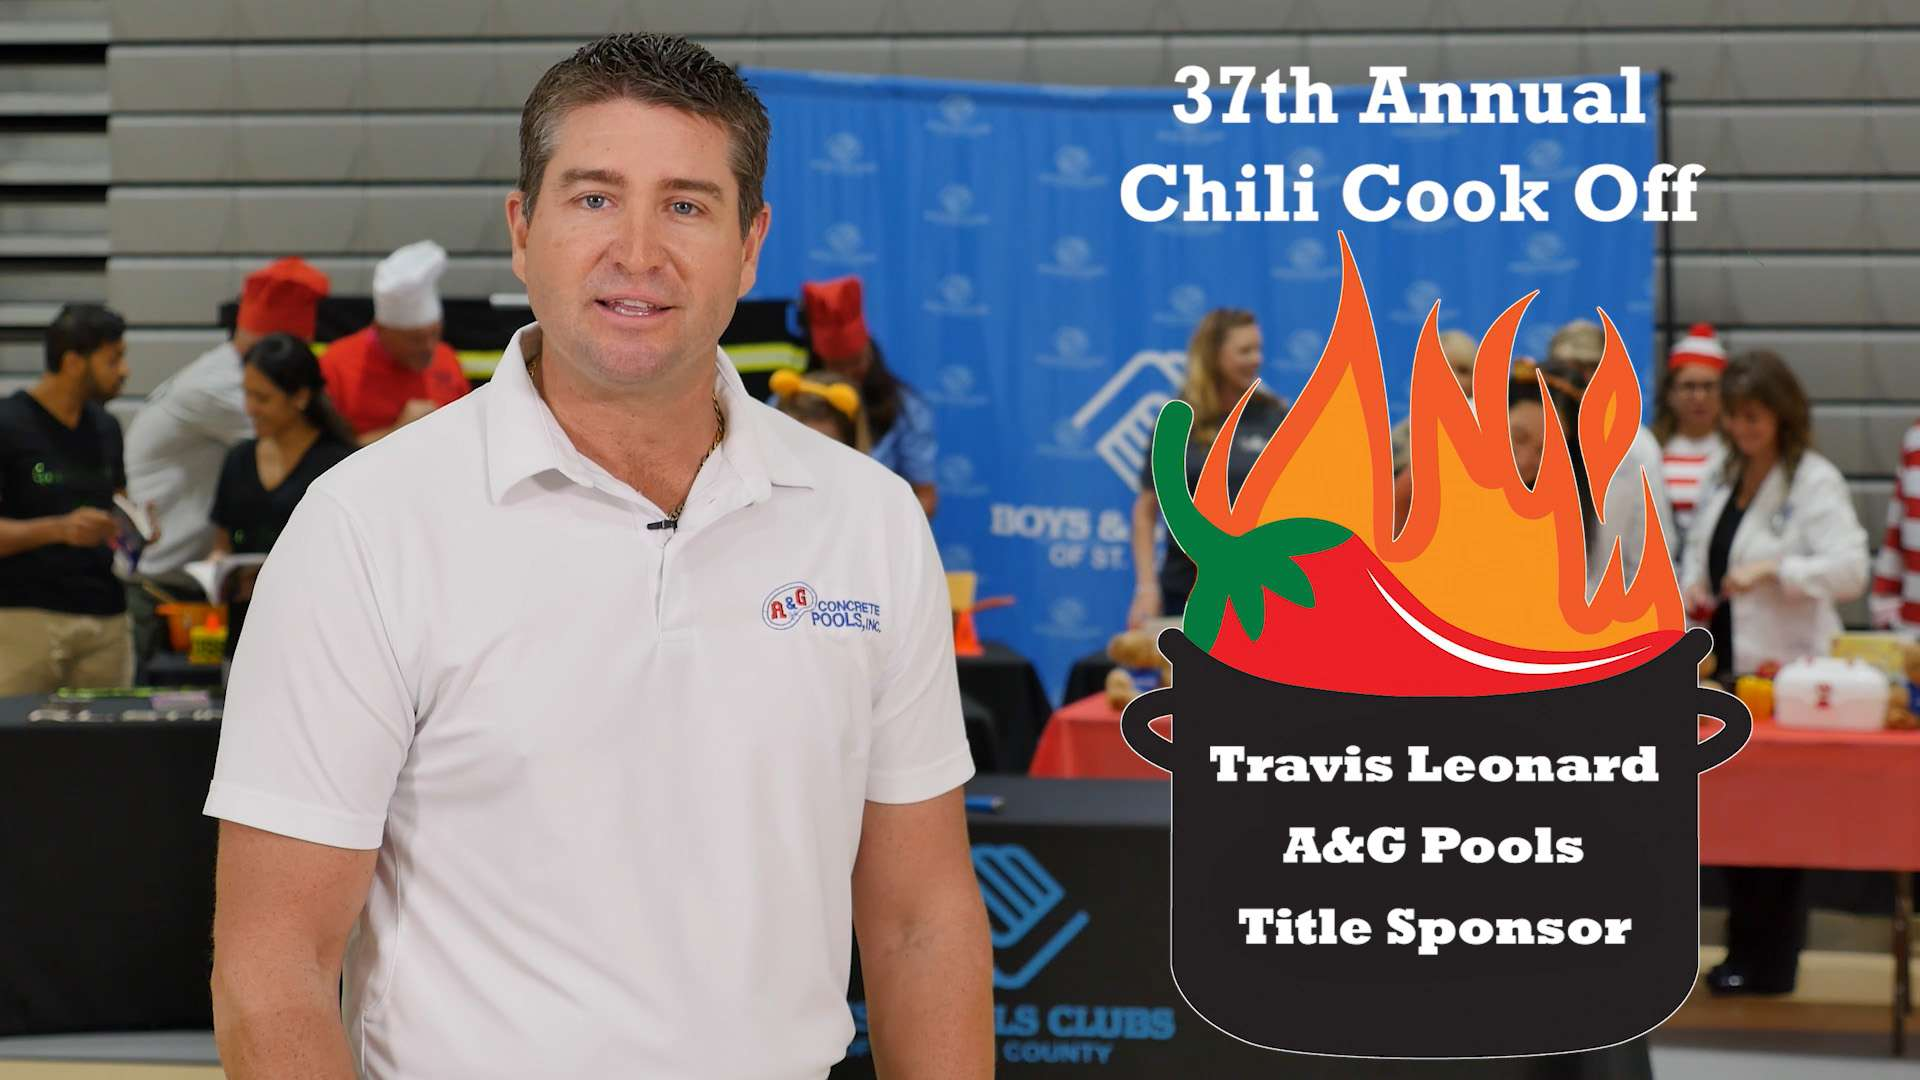 37th Annual Chili Cook Off